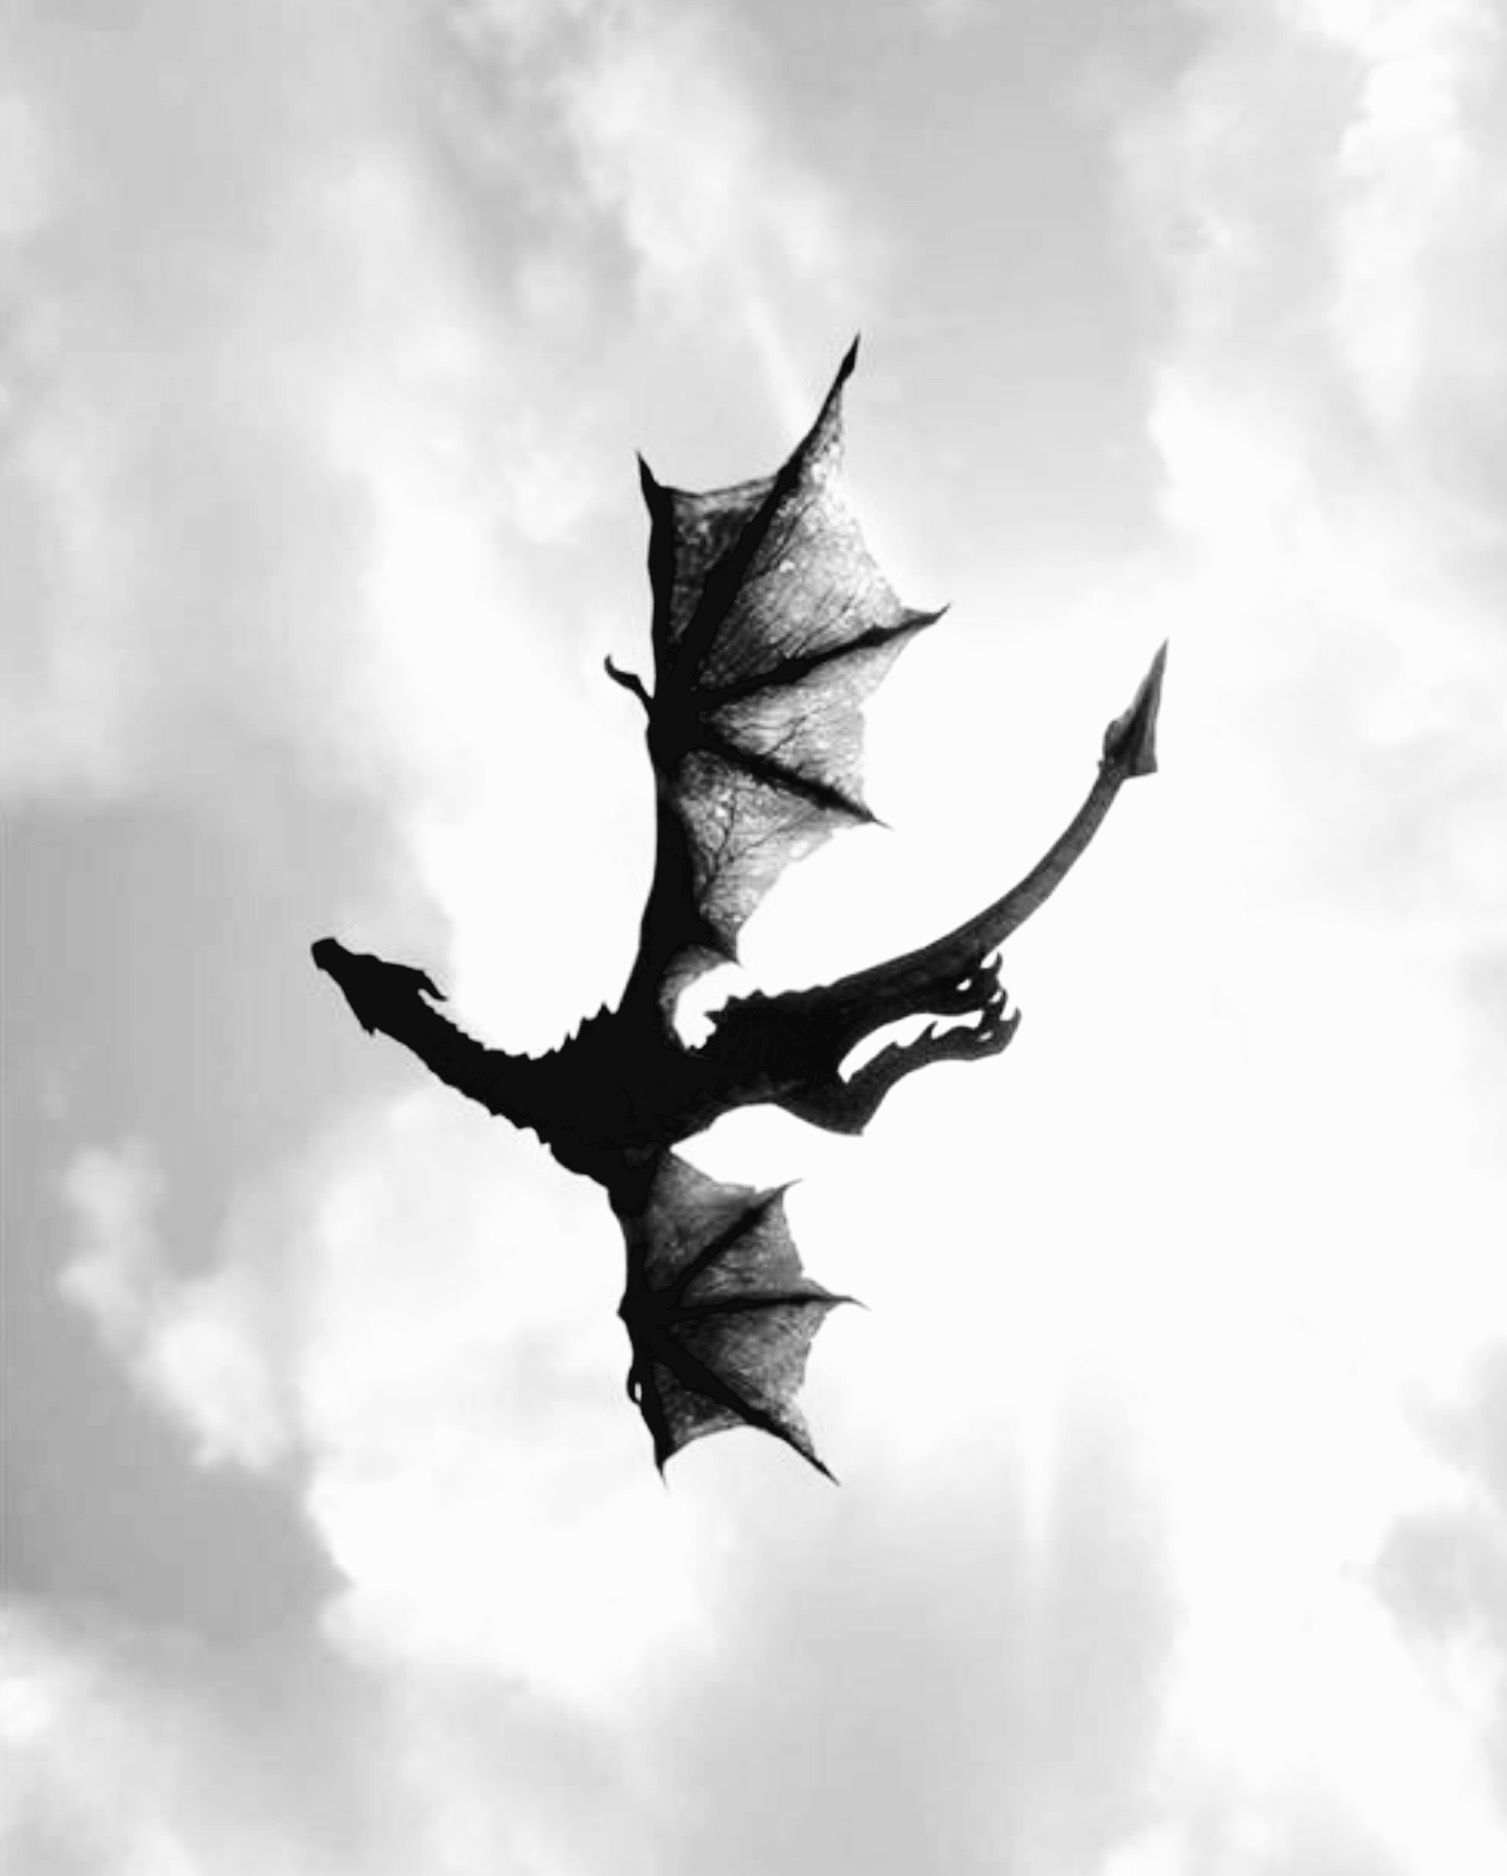 Pin by khyssa on hadassirenas y dragones pinterest dragons looks like it was done with just ink and brush like japanese writing very much how i see aerial balletic dance of my fendellin fyrrens against buycottarizona